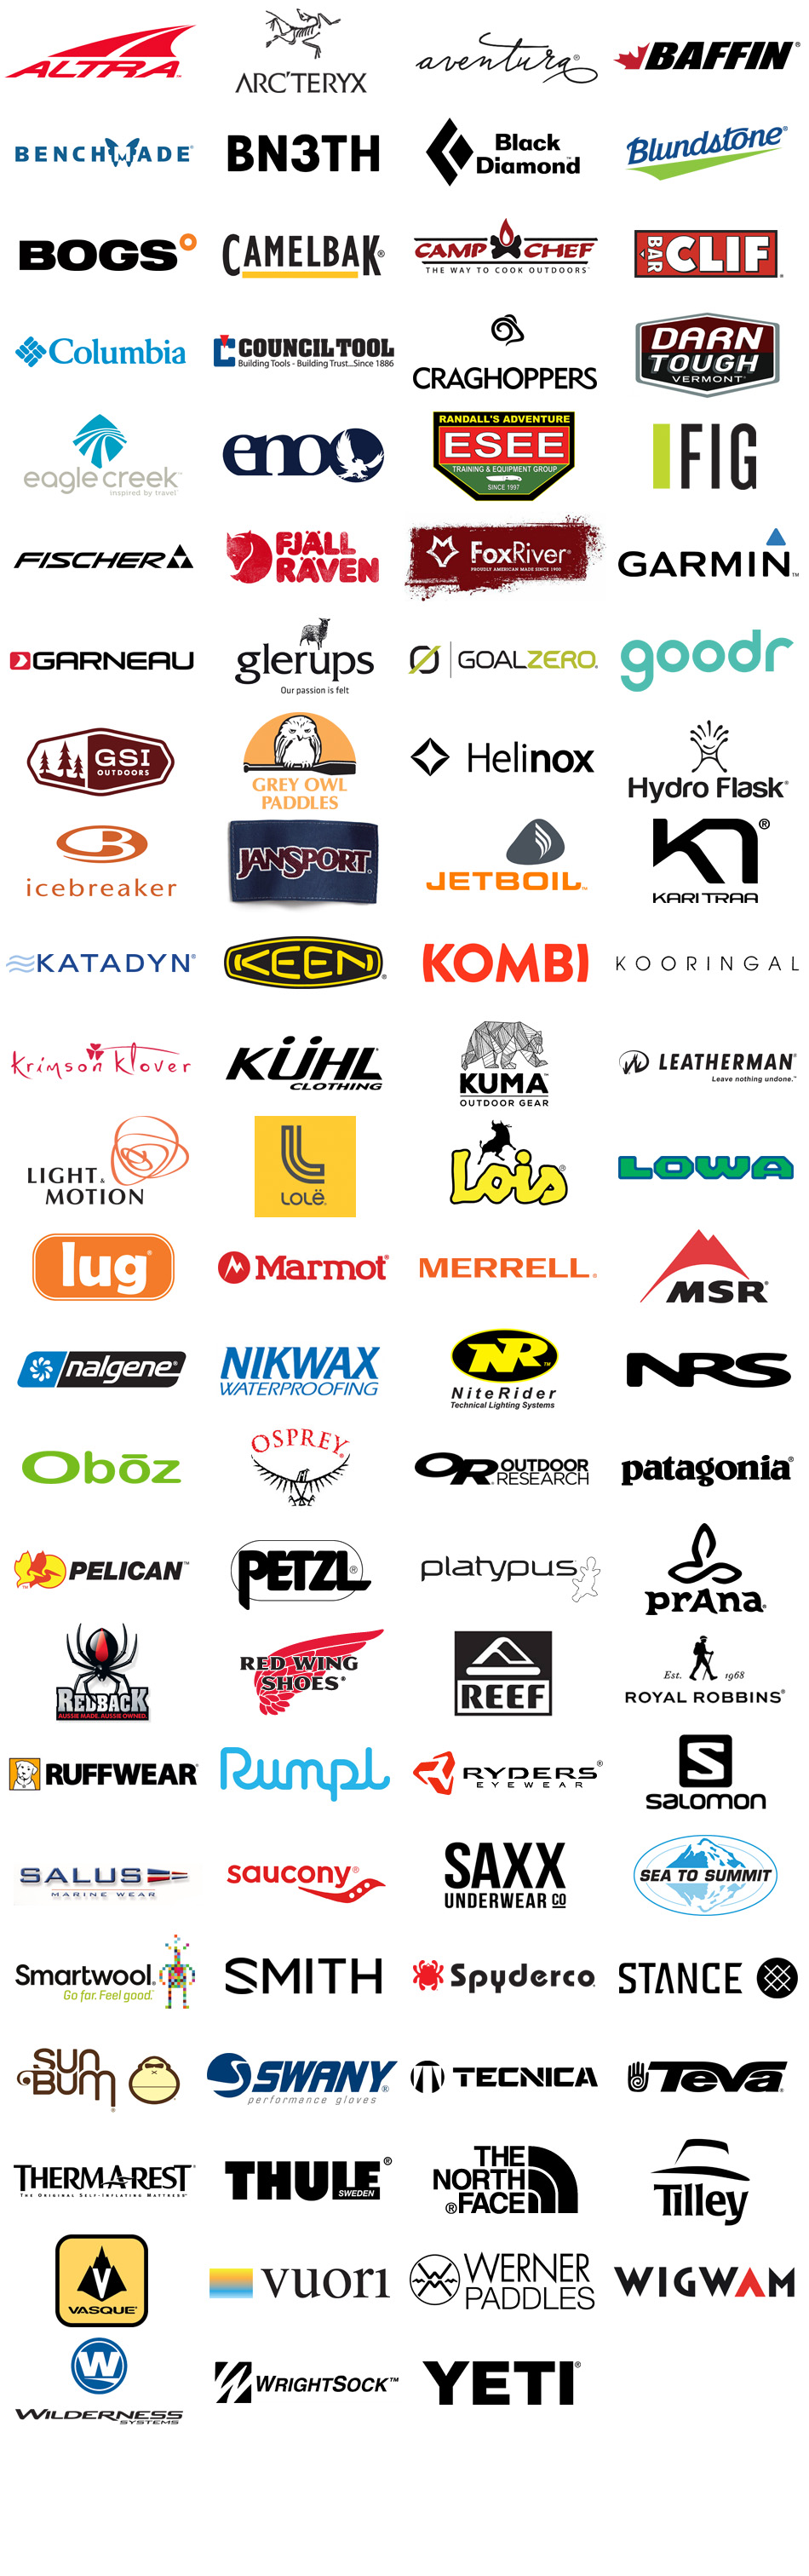 Brands we carry for technical outdoor clothing, footwear and gear